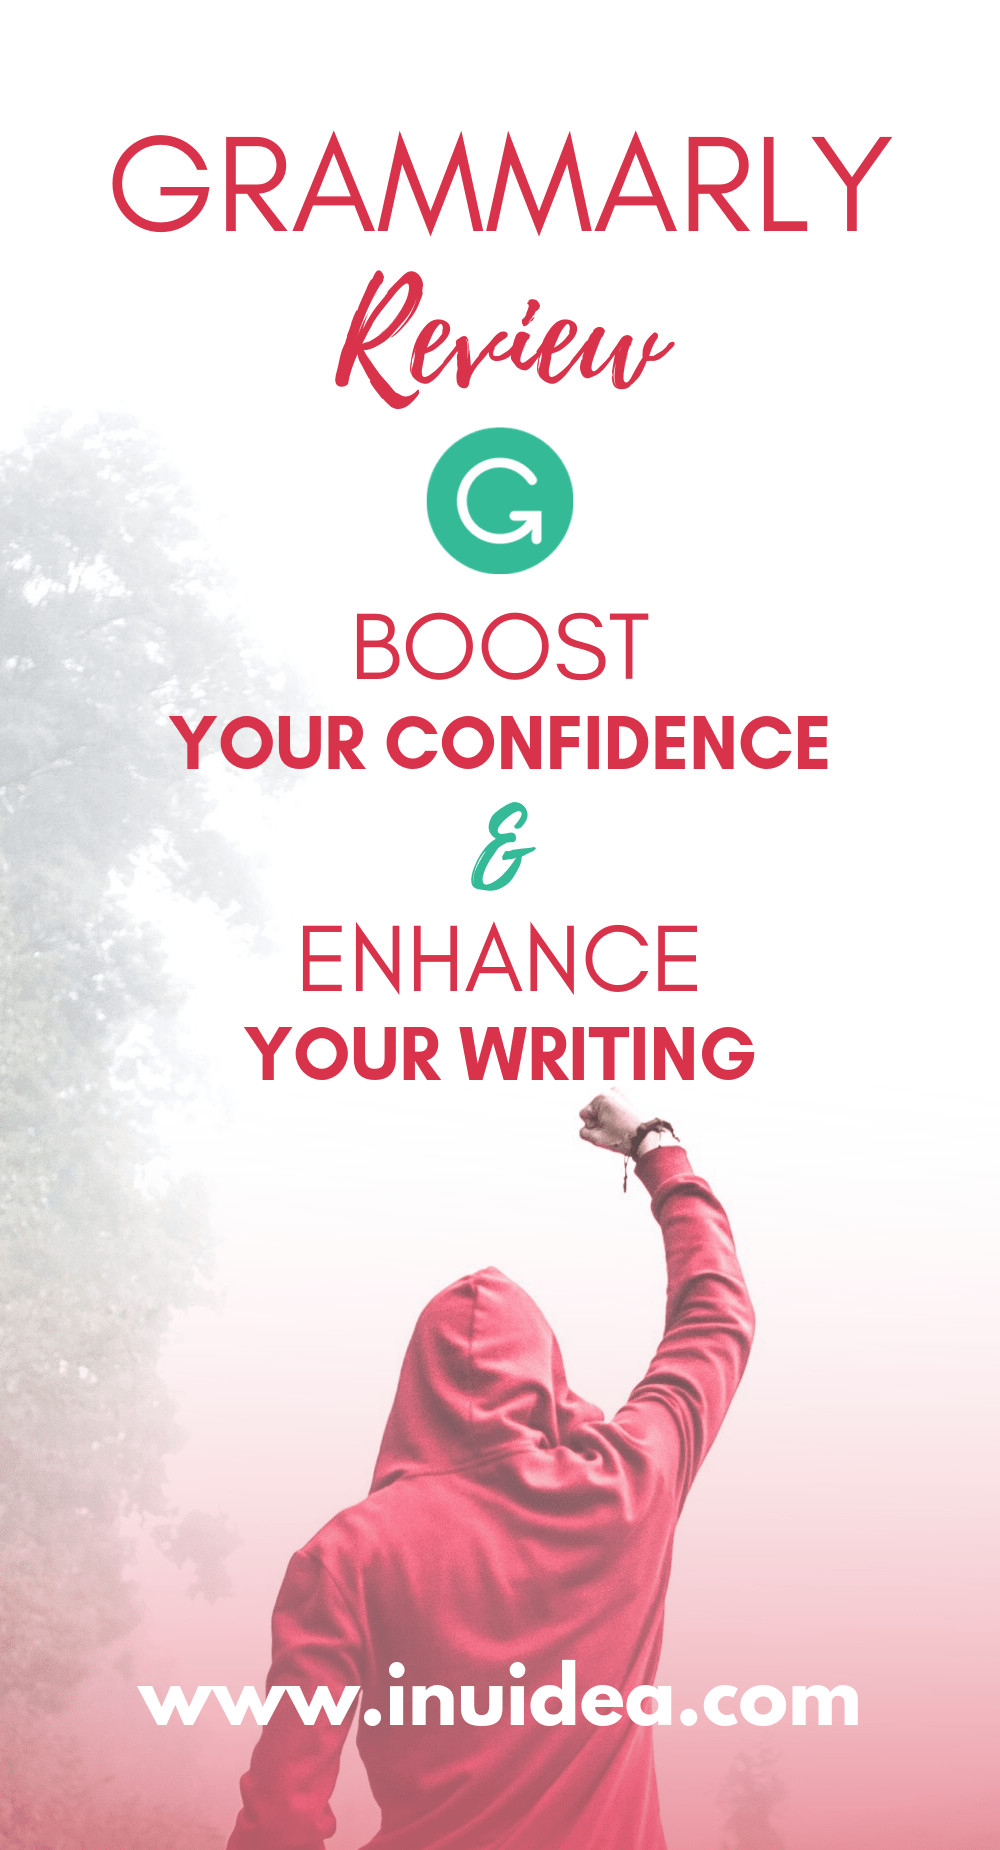 How Good Is Grammarly Premium